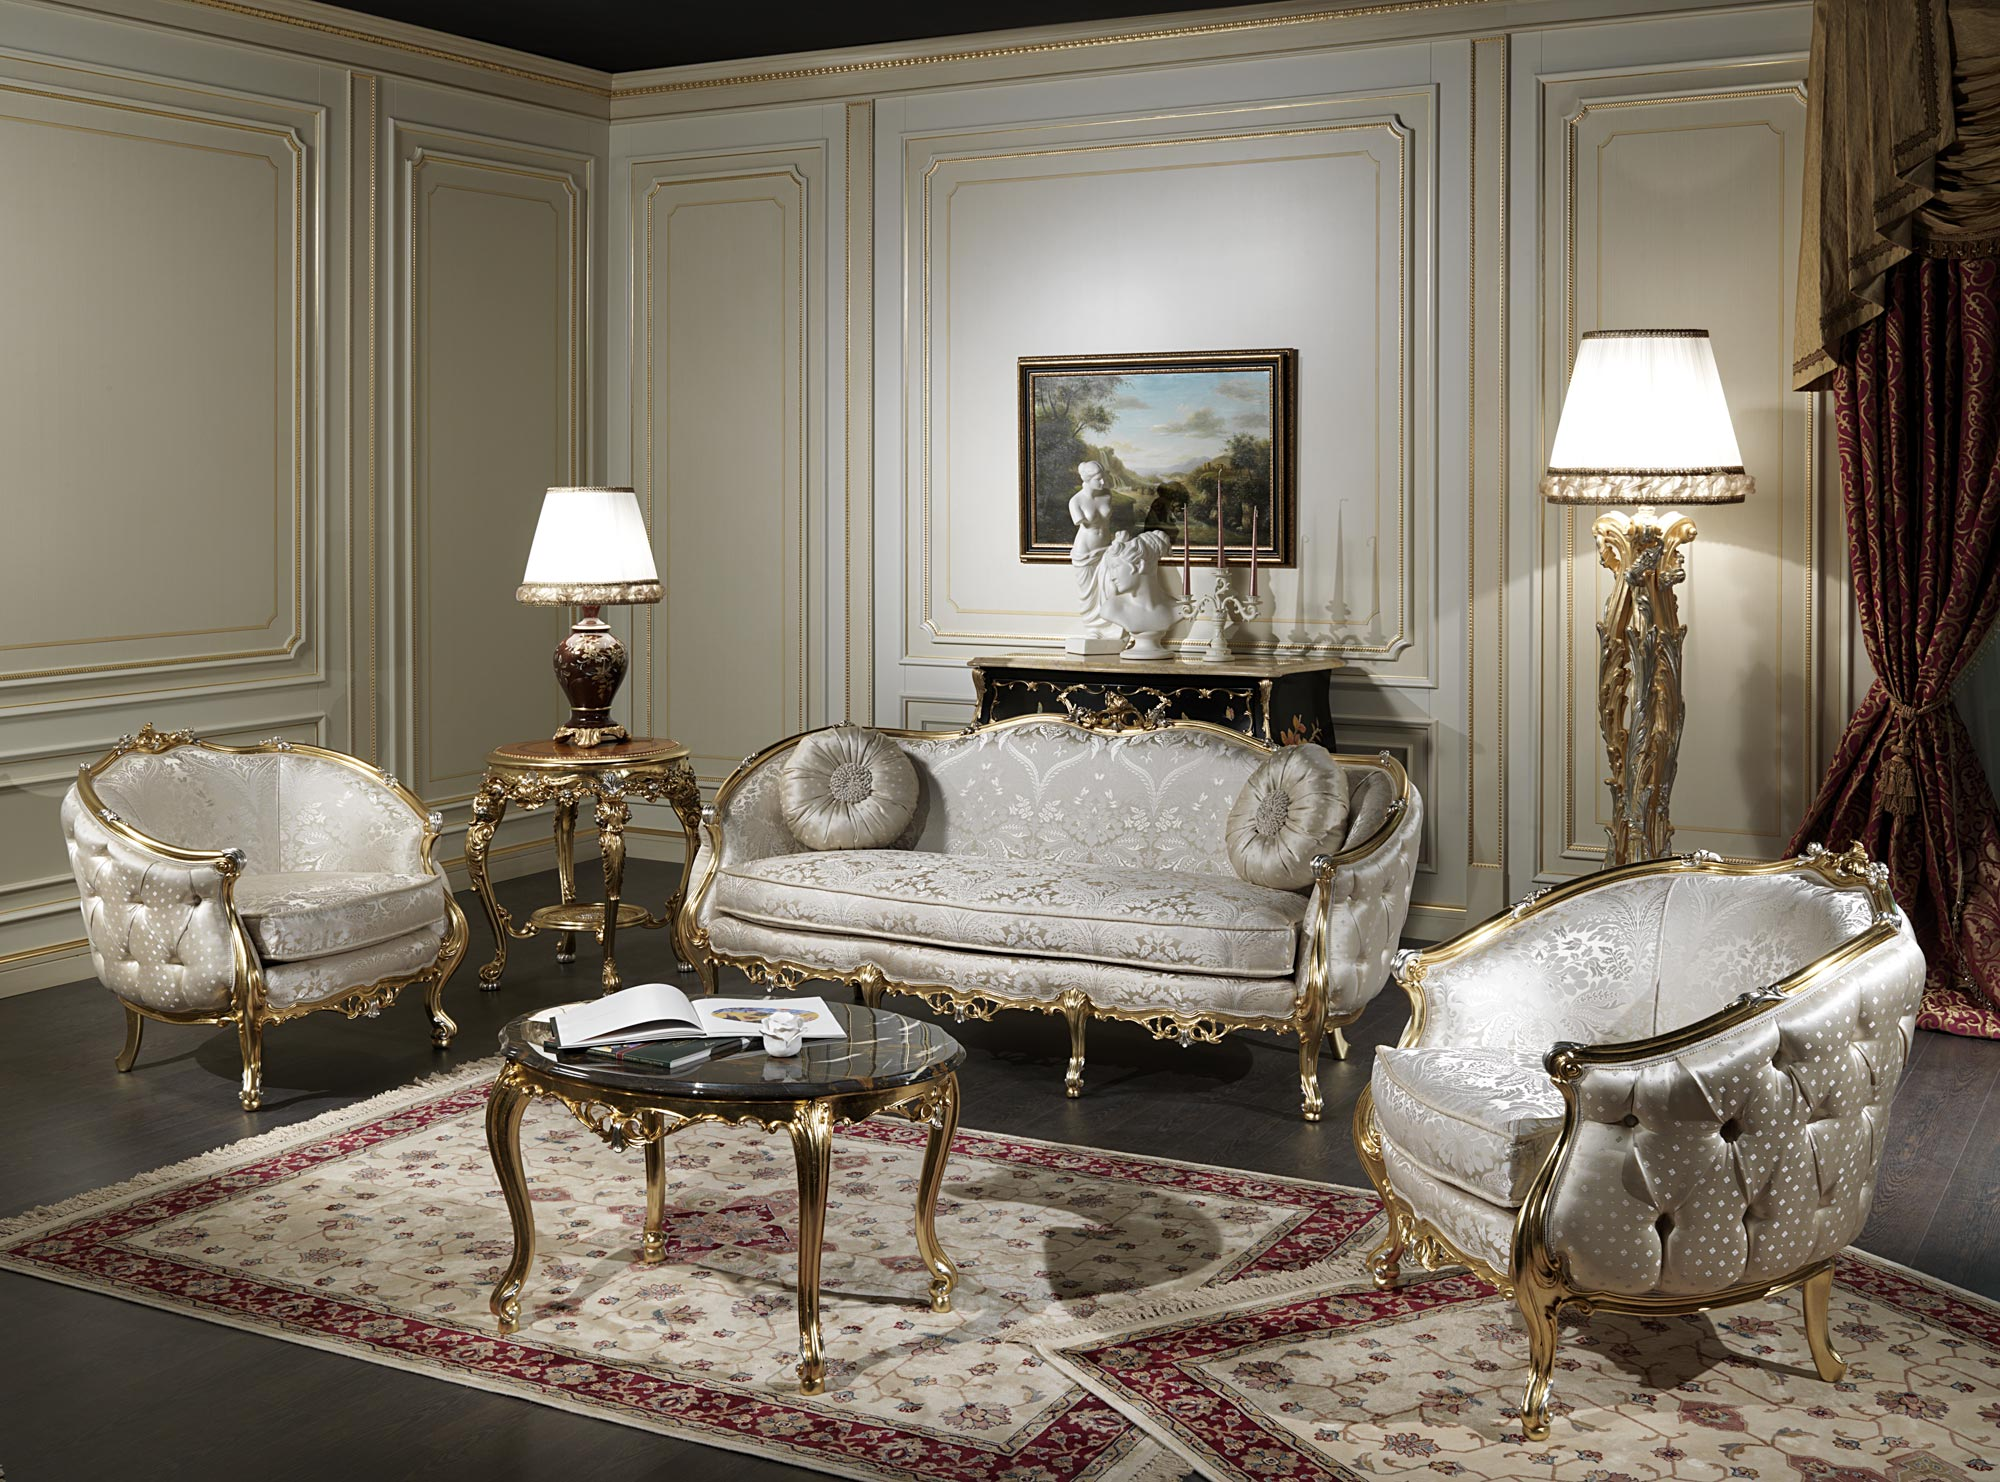 Classic living room furniture venezia vimercati classic for Classic furniture